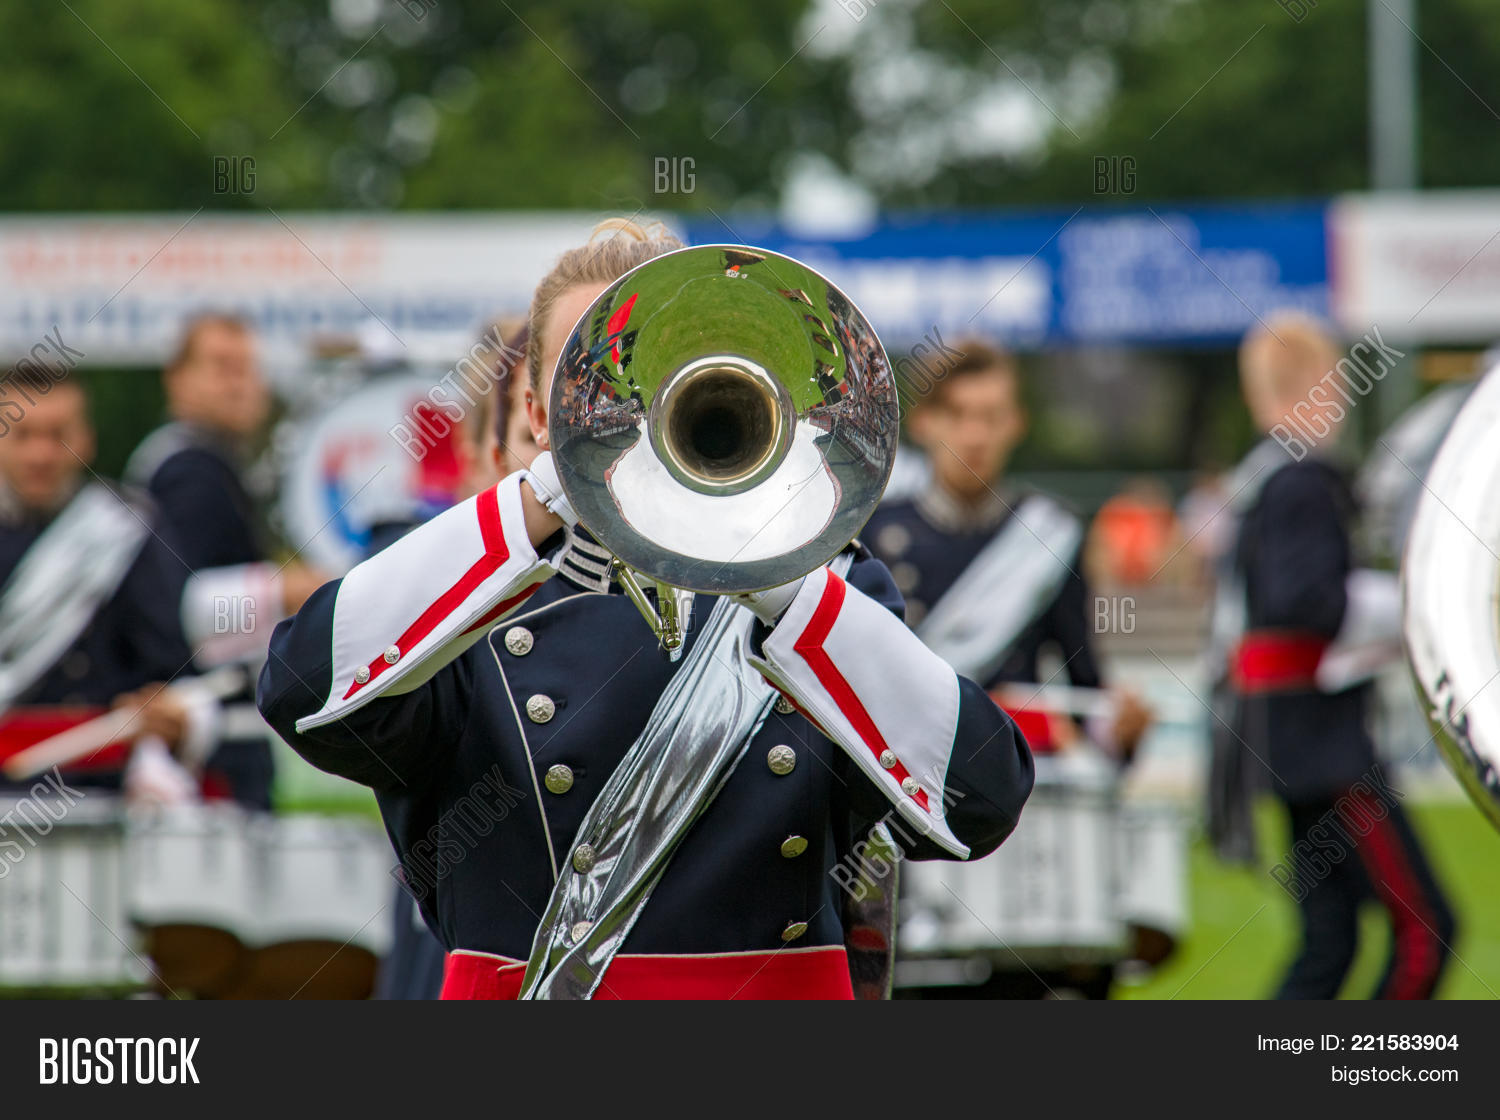 Details Music, Show Image & Photo (Free Trial) | Bigstock